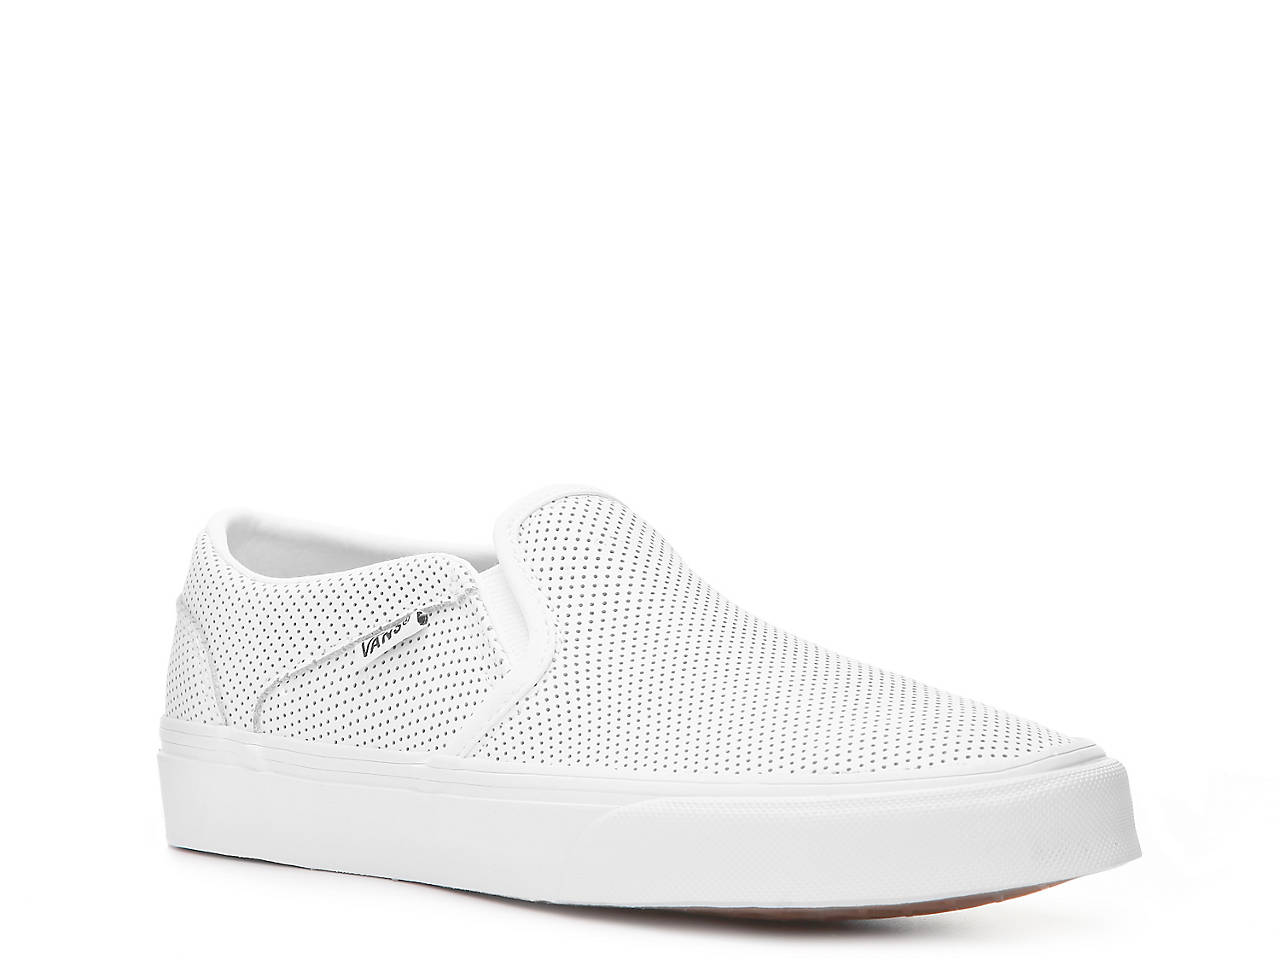 ca96f7c35e75 Vans Asher Perforated Slip-On Sneaker - Women s Women s Shoes